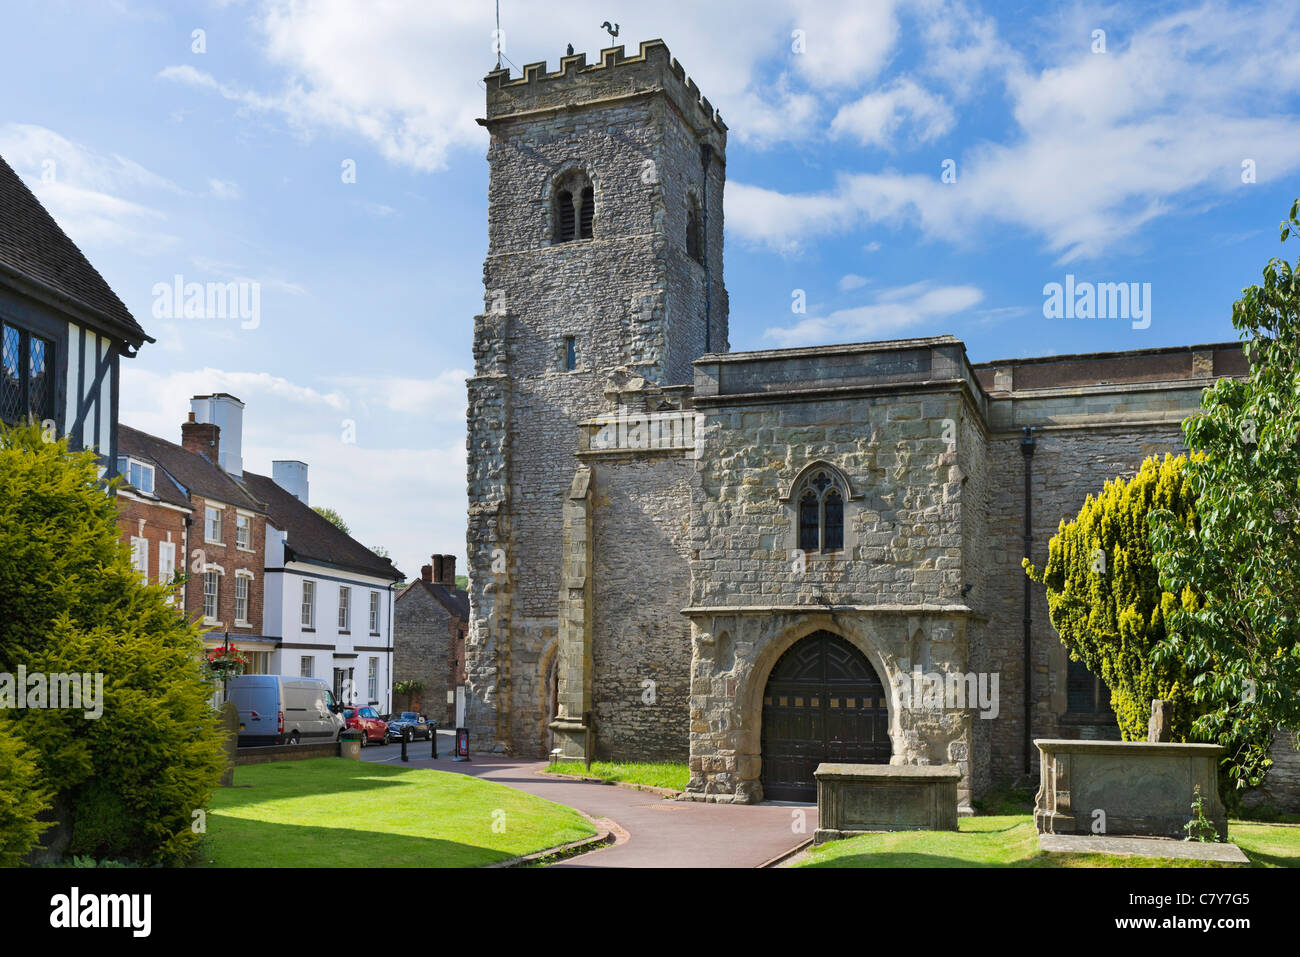 Holy Trinity Church in the village of Much Wenlock, Shropshire, England, UK - Stock Image